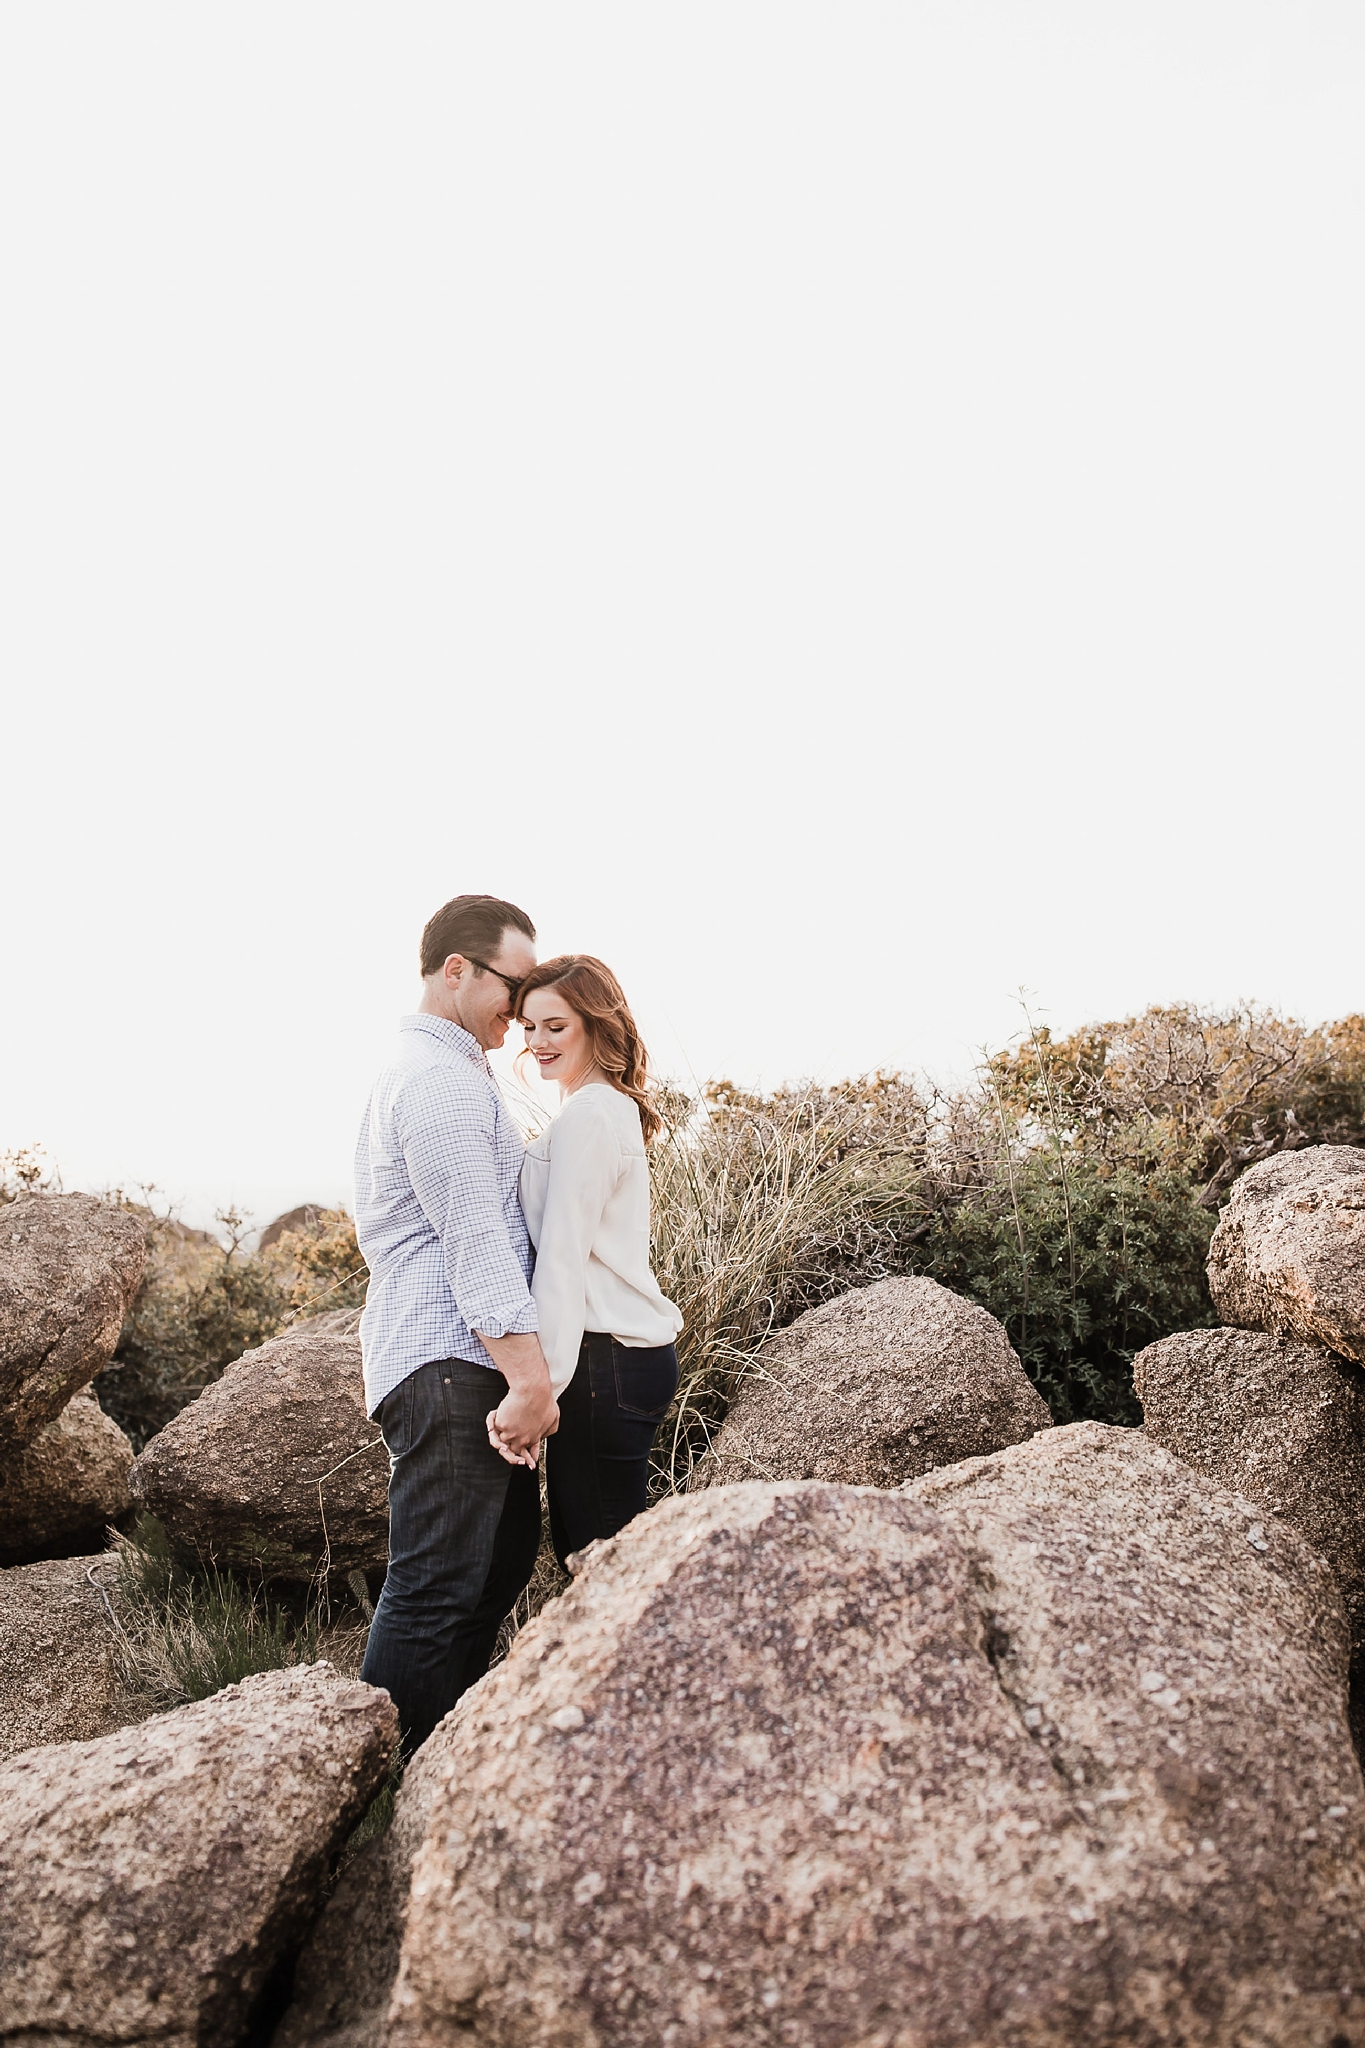 Alicia+lucia+photography+-+albuquerque+wedding+photographer+-+santa+fe+wedding+photography+-+new+mexico+wedding+photographer+-+new+mexico+wedding+-+new+mexico+engagement+-+engagement+photographer+-+mountain+engagement+-+desert+engagement_0001.jpg